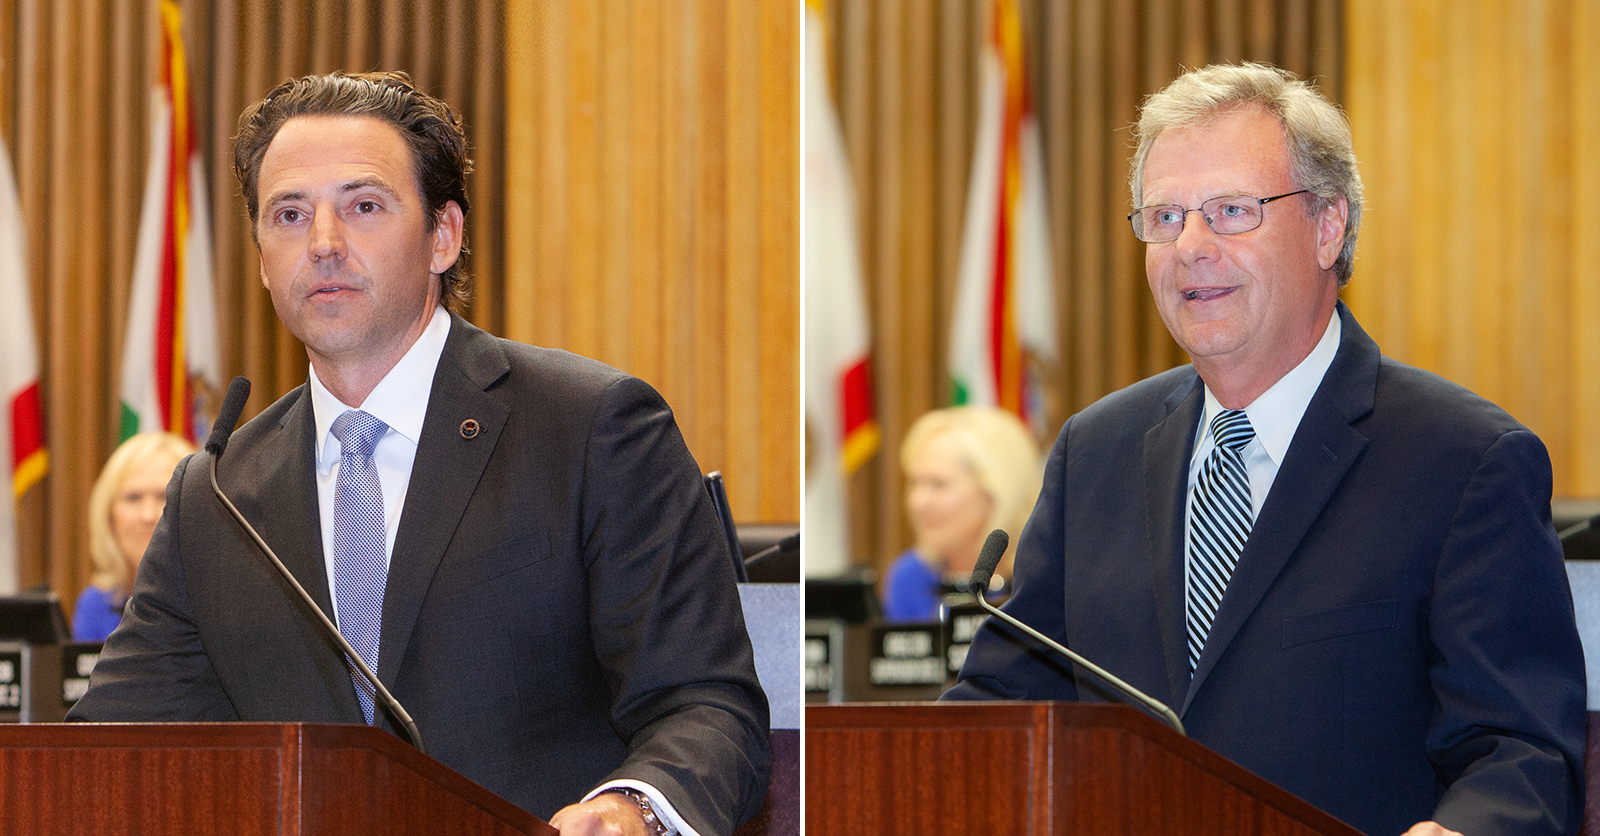 Supervisors Nathan Fletcher (left) and Jim Desmond (right) at their swearing-in ceremony.